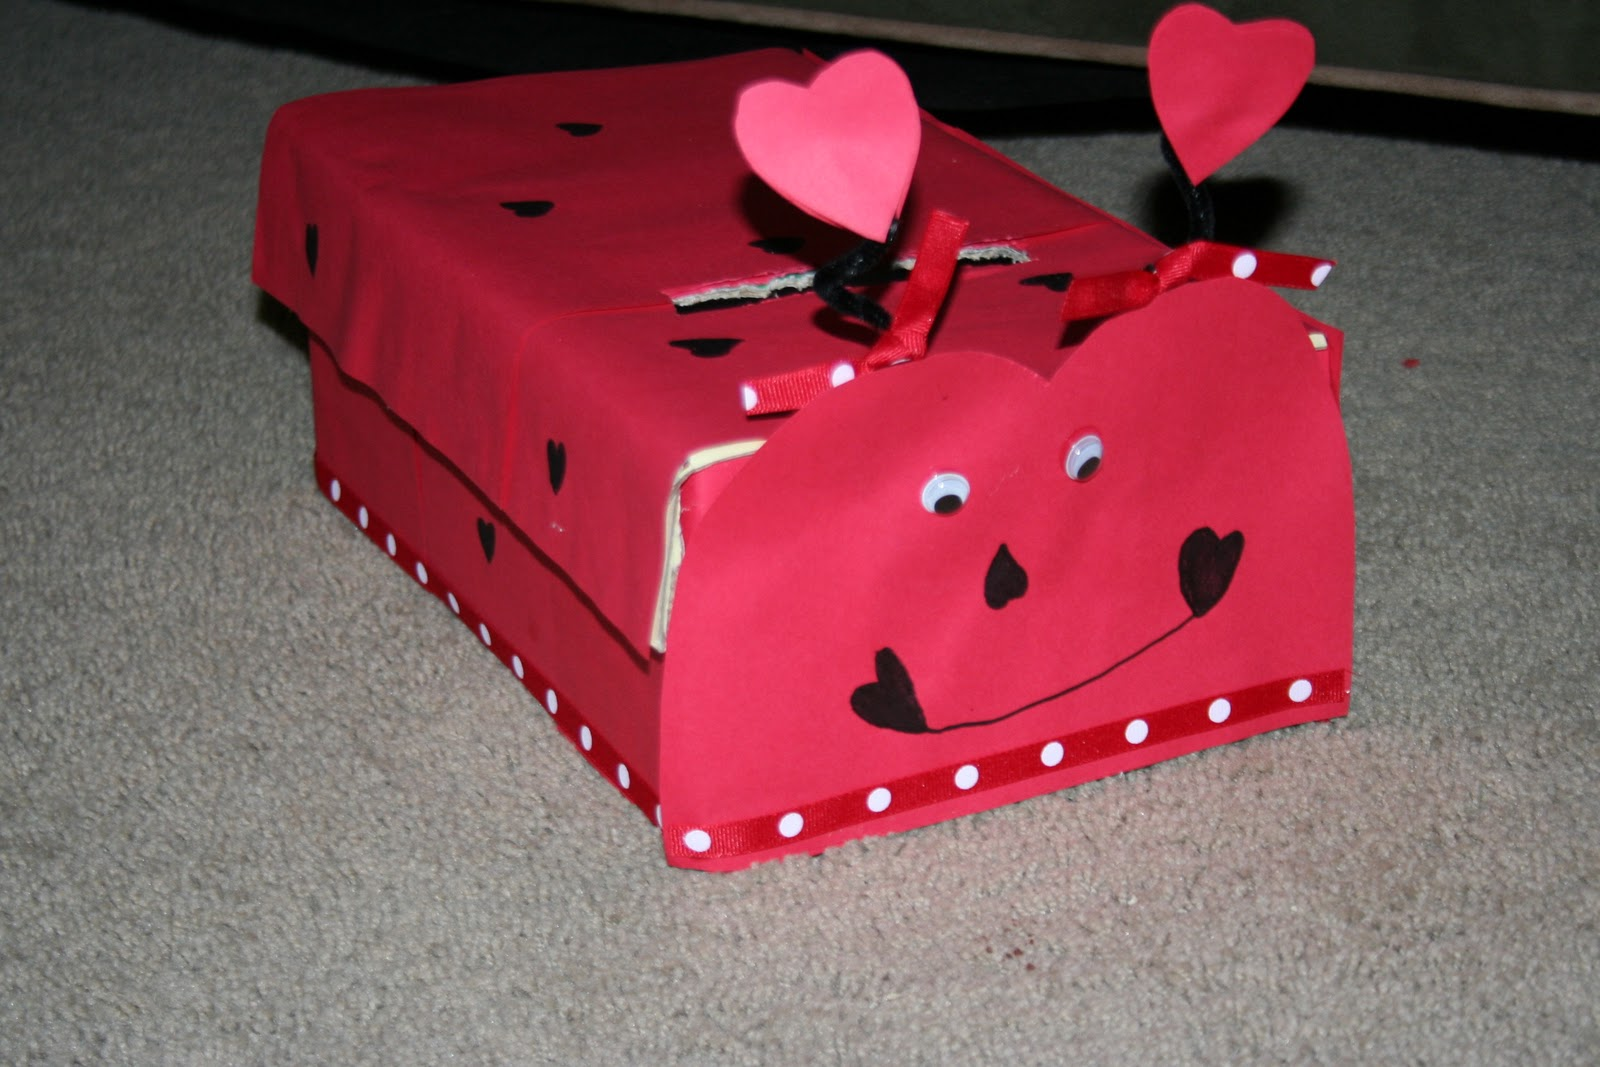 Valentines Box Decorating Ideas Mommy Lessons 60 Creative Valentine Box 60 Ladybug 22 & Decorative Boxes: valentines box decorating ideas | carinsurancepaw.top